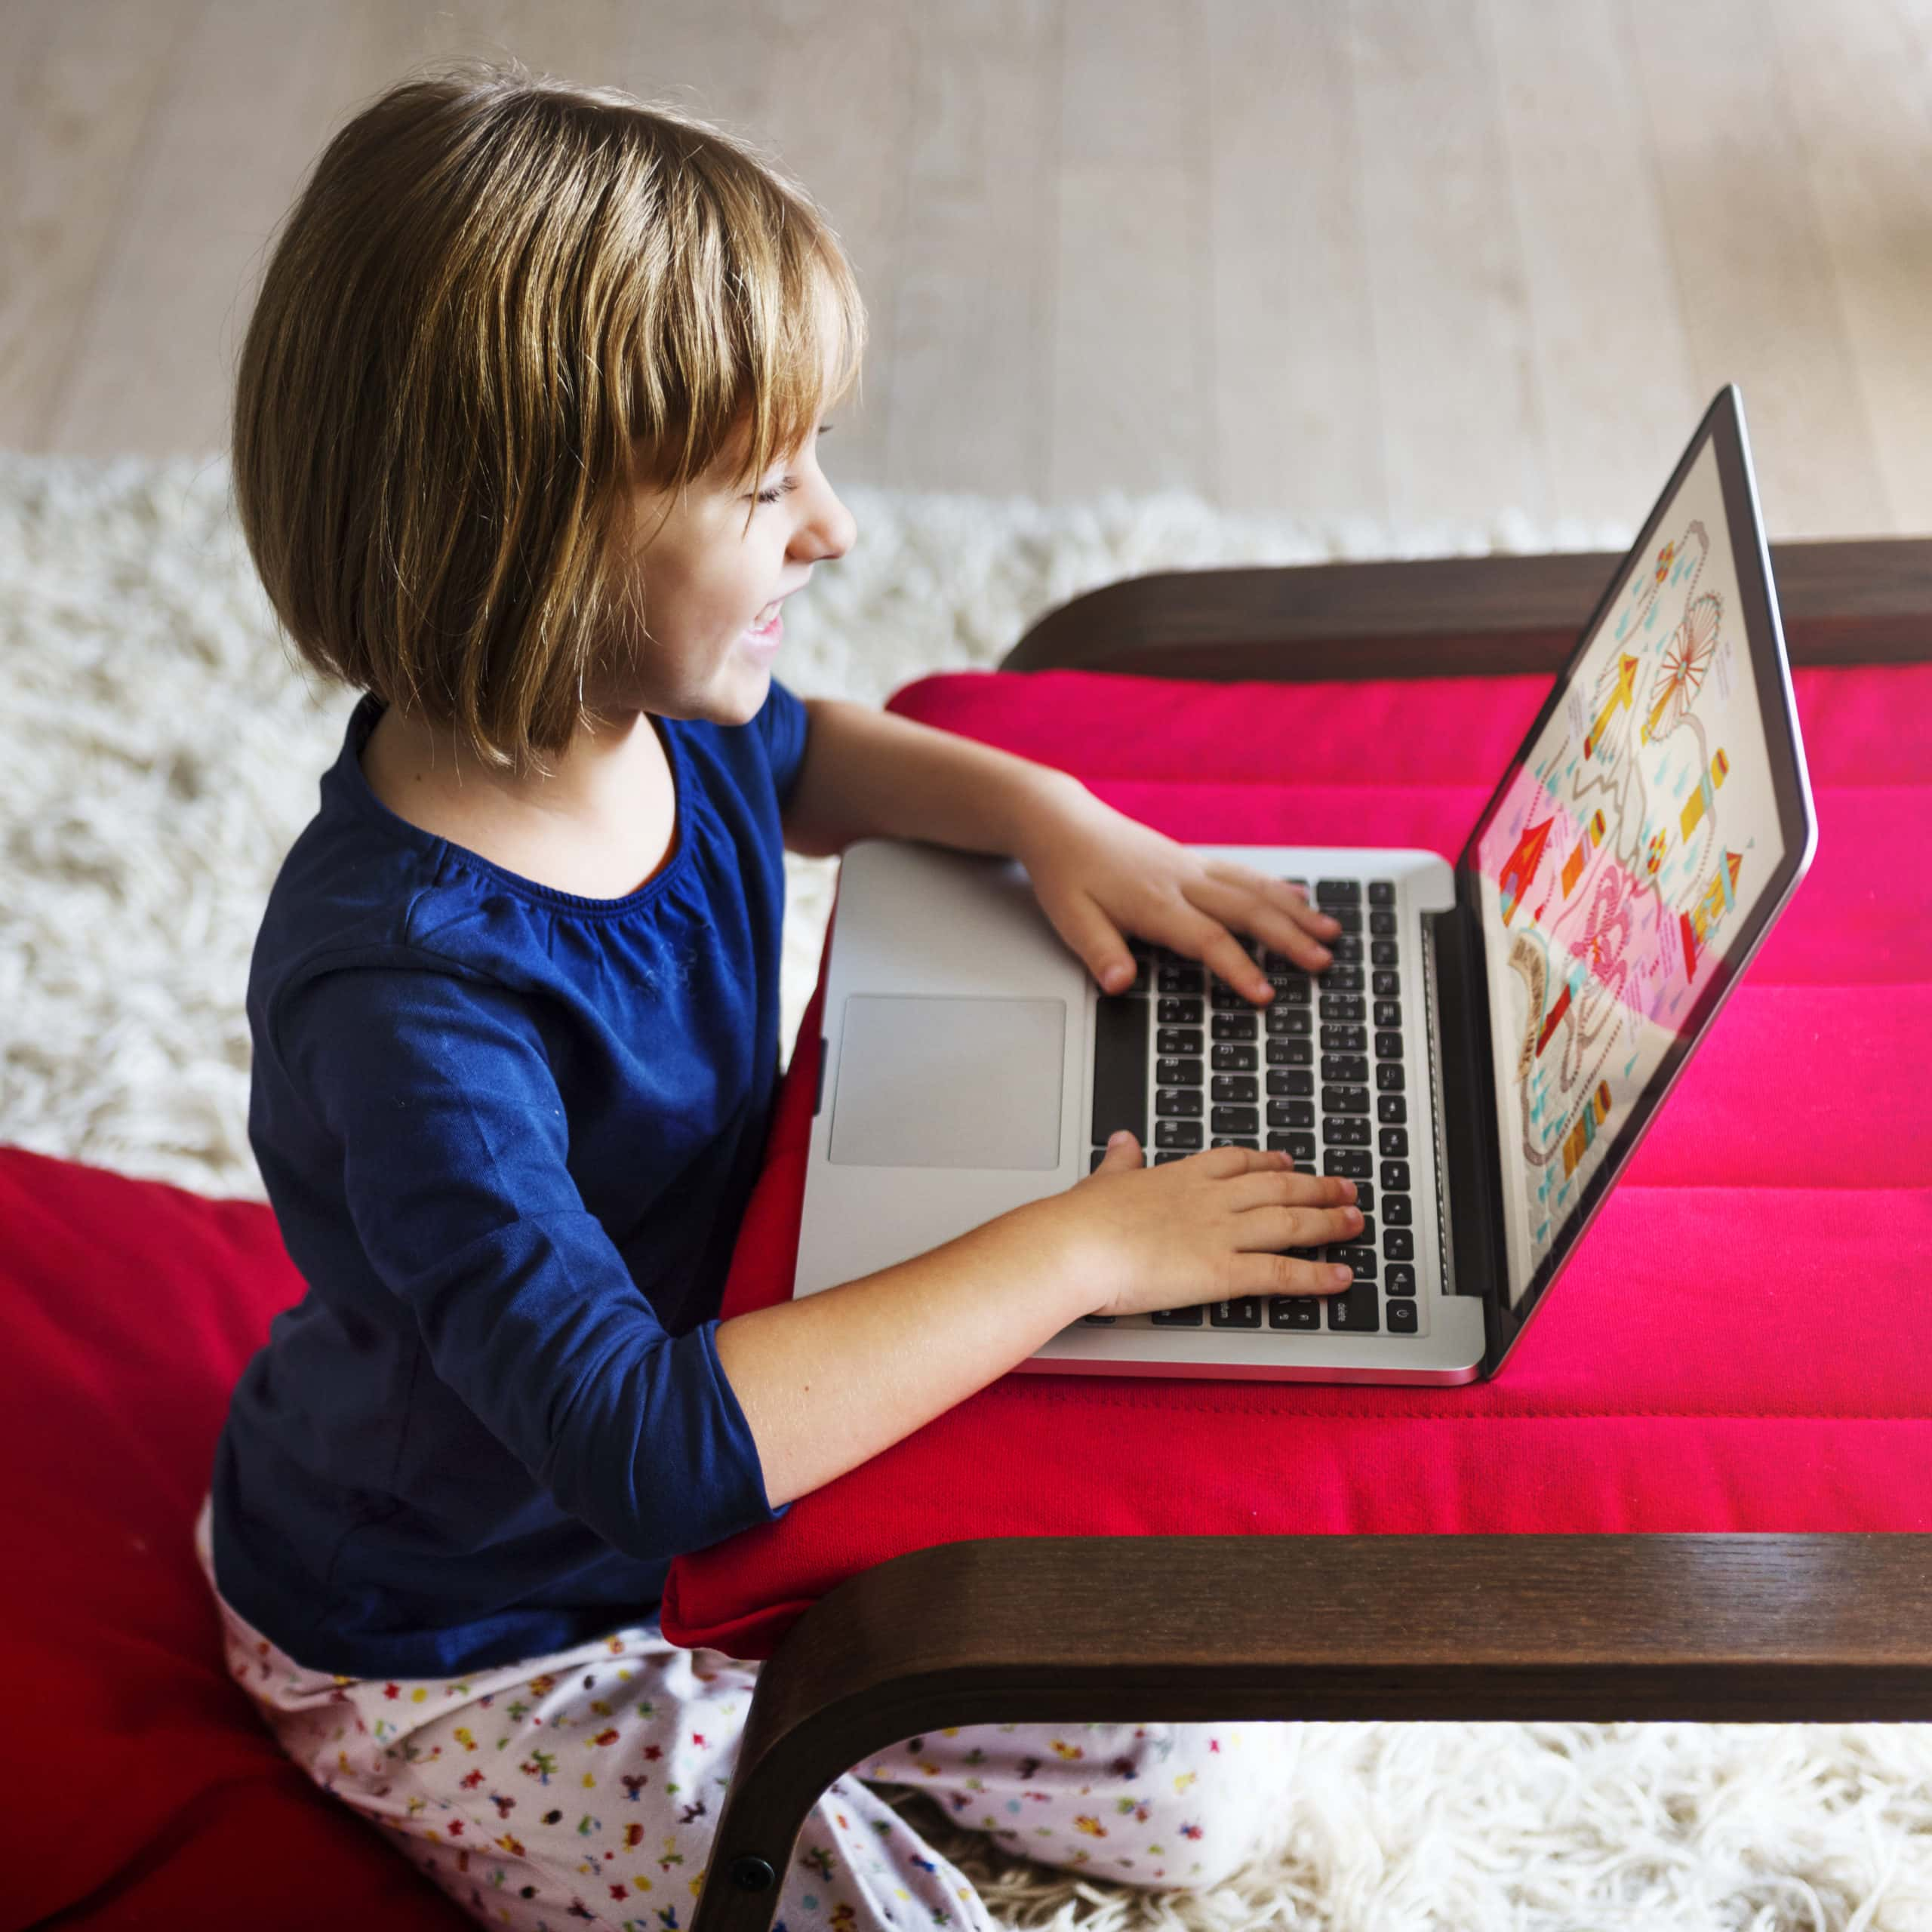 girl working on laptop, online learning